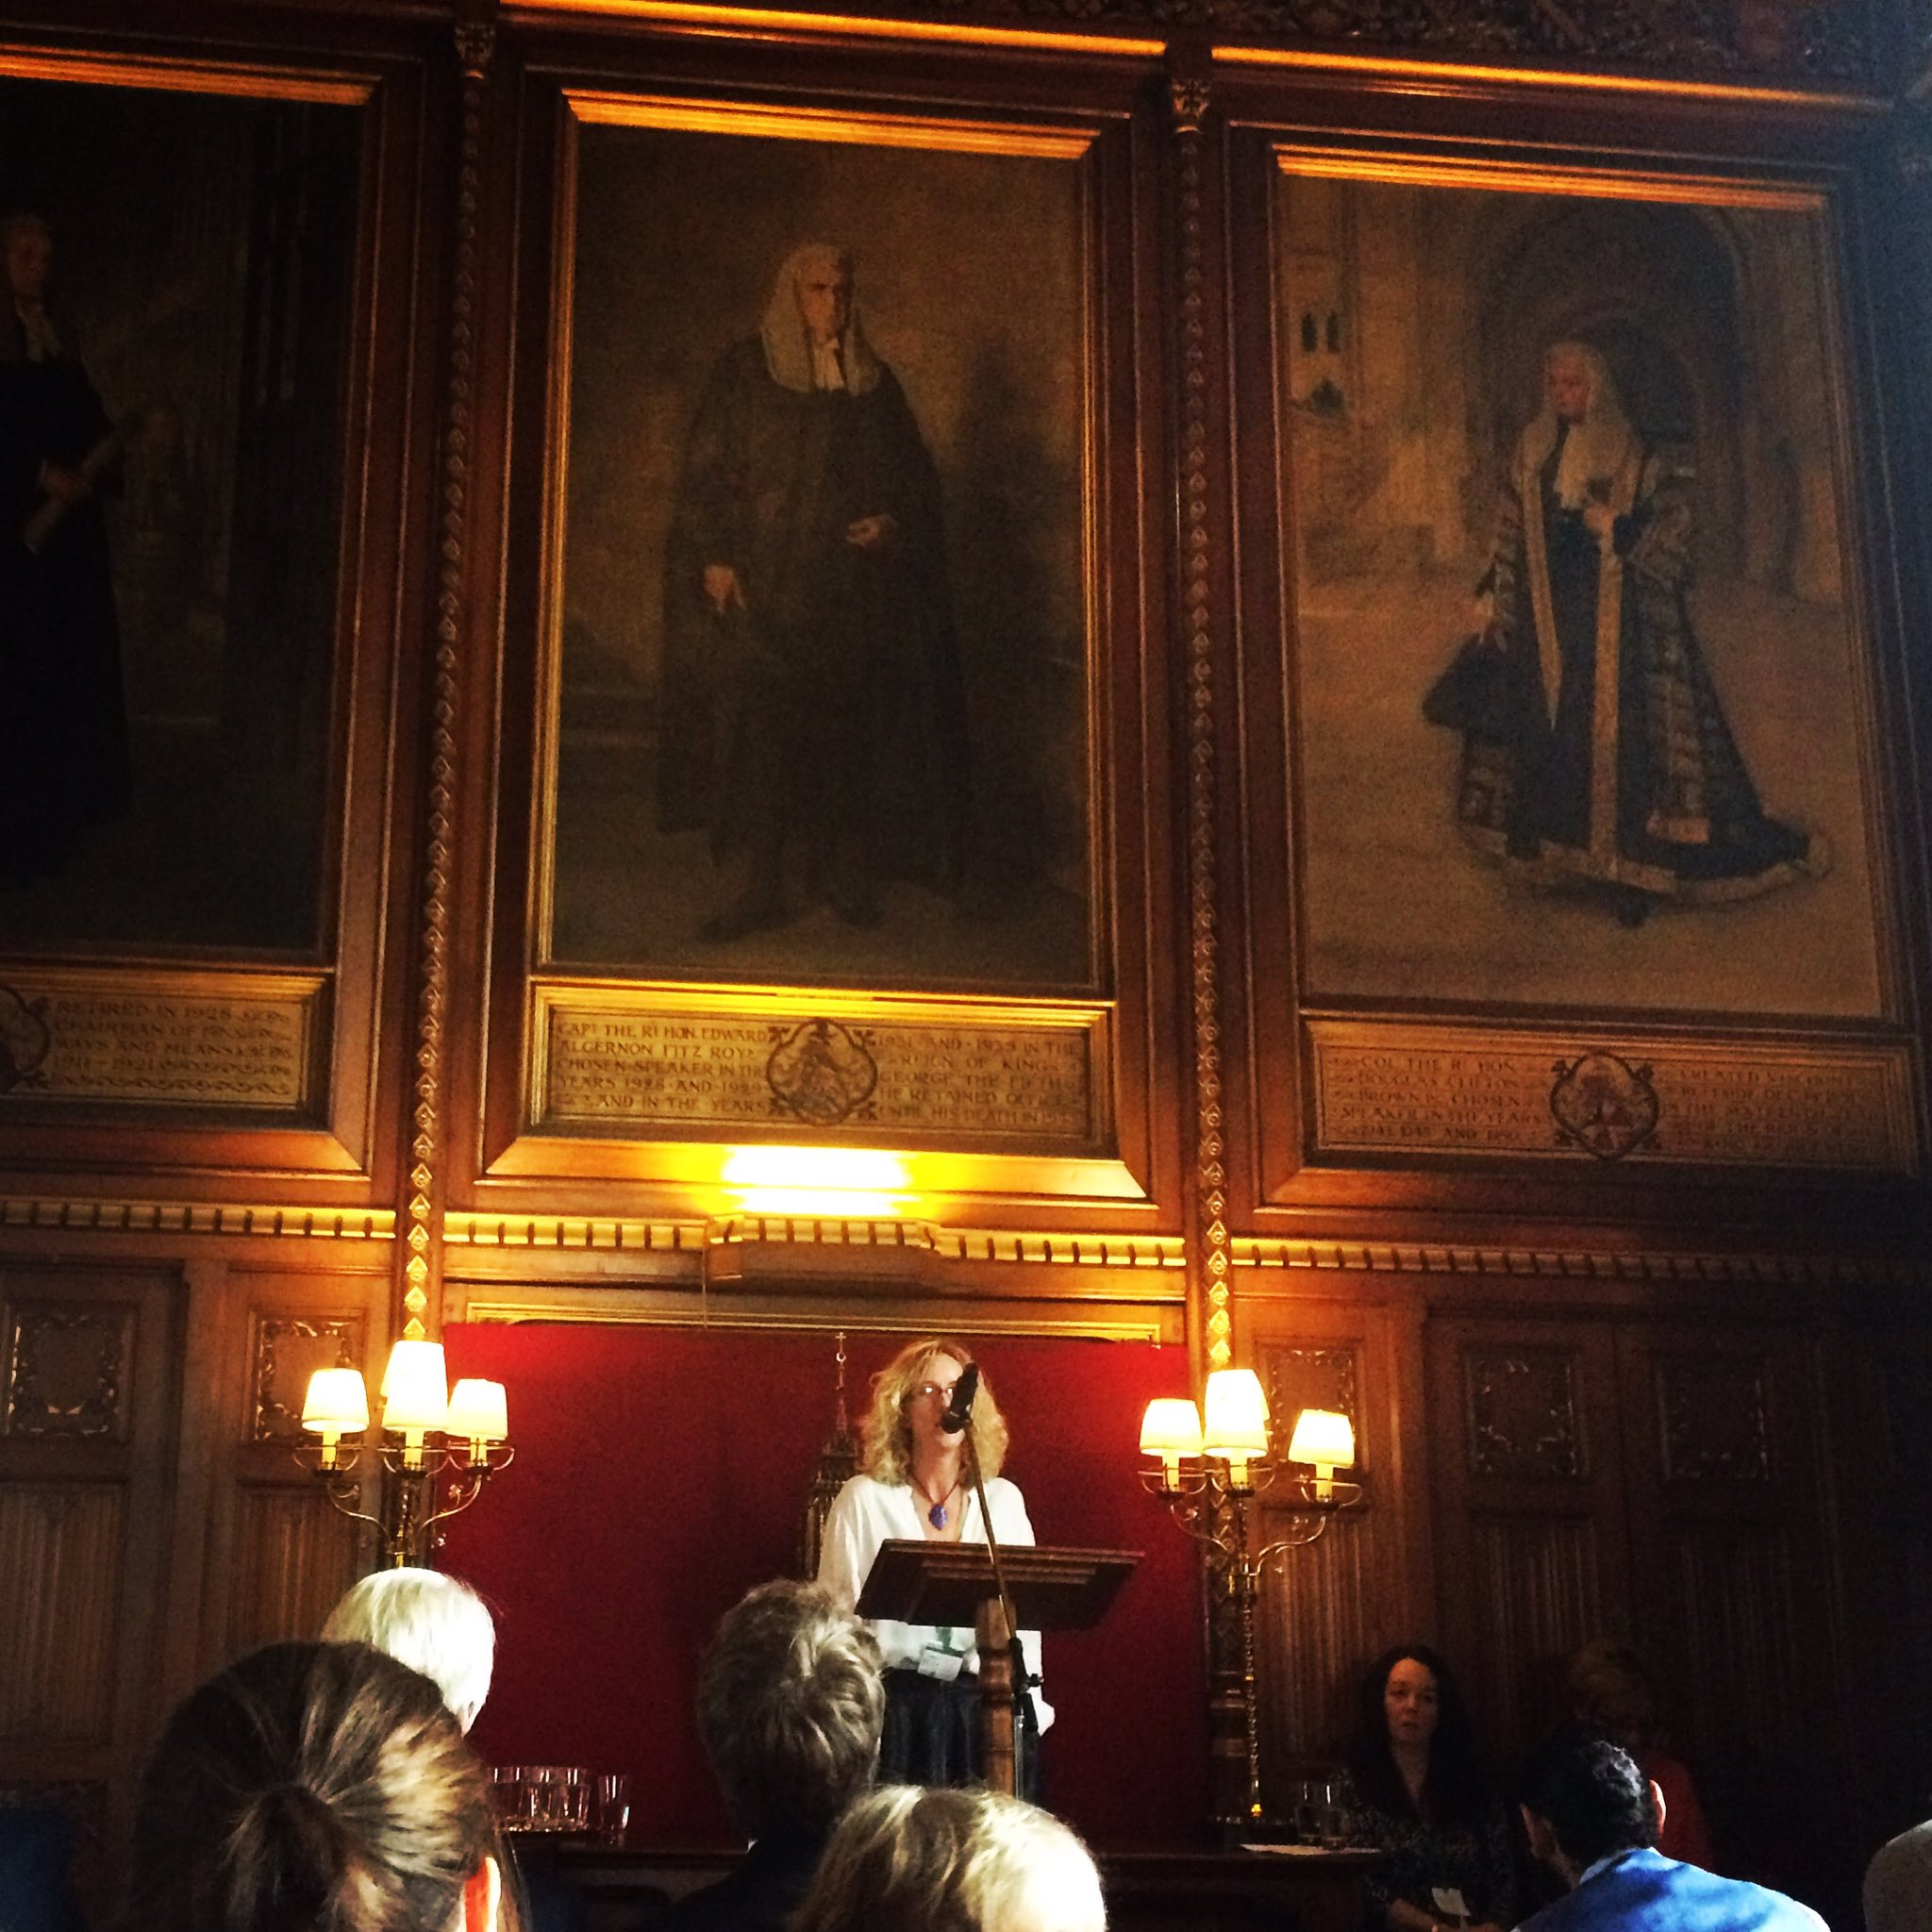 Tracey Brown, CEO @senseaboutsci opens #EvidenceMatters event in Speakers House @UKParliament https://t.co/sRoN0OgzZL